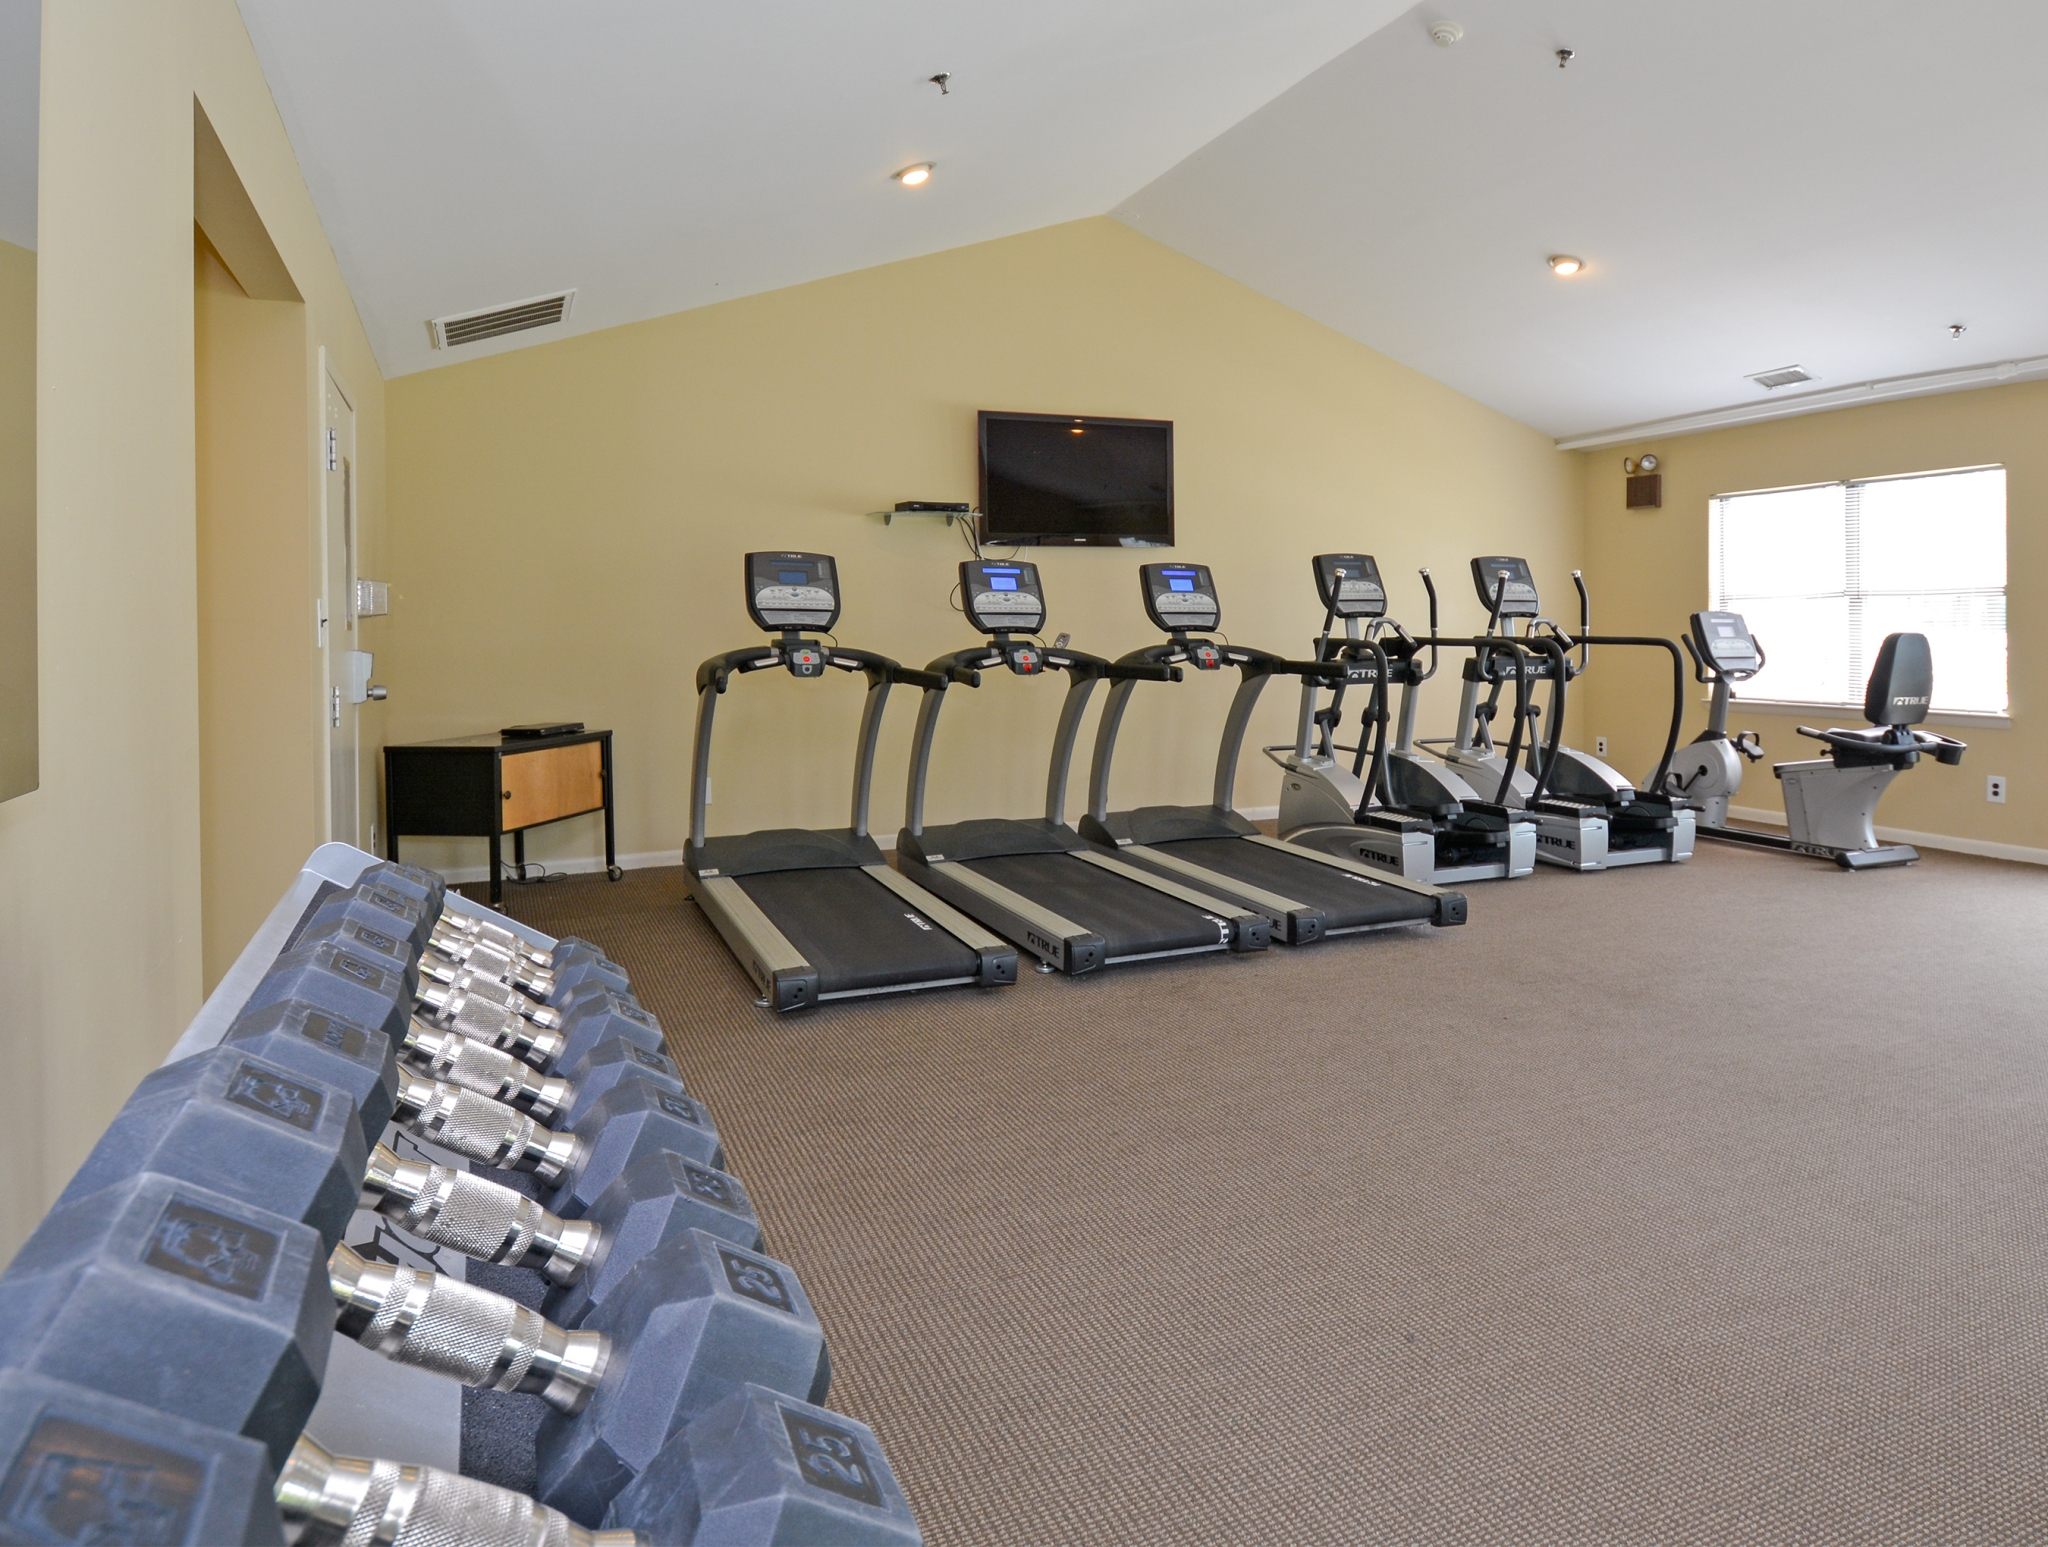 Resident Fitness Center | Apartments Marlton, NJ | Willlow Ridge Village Apartments